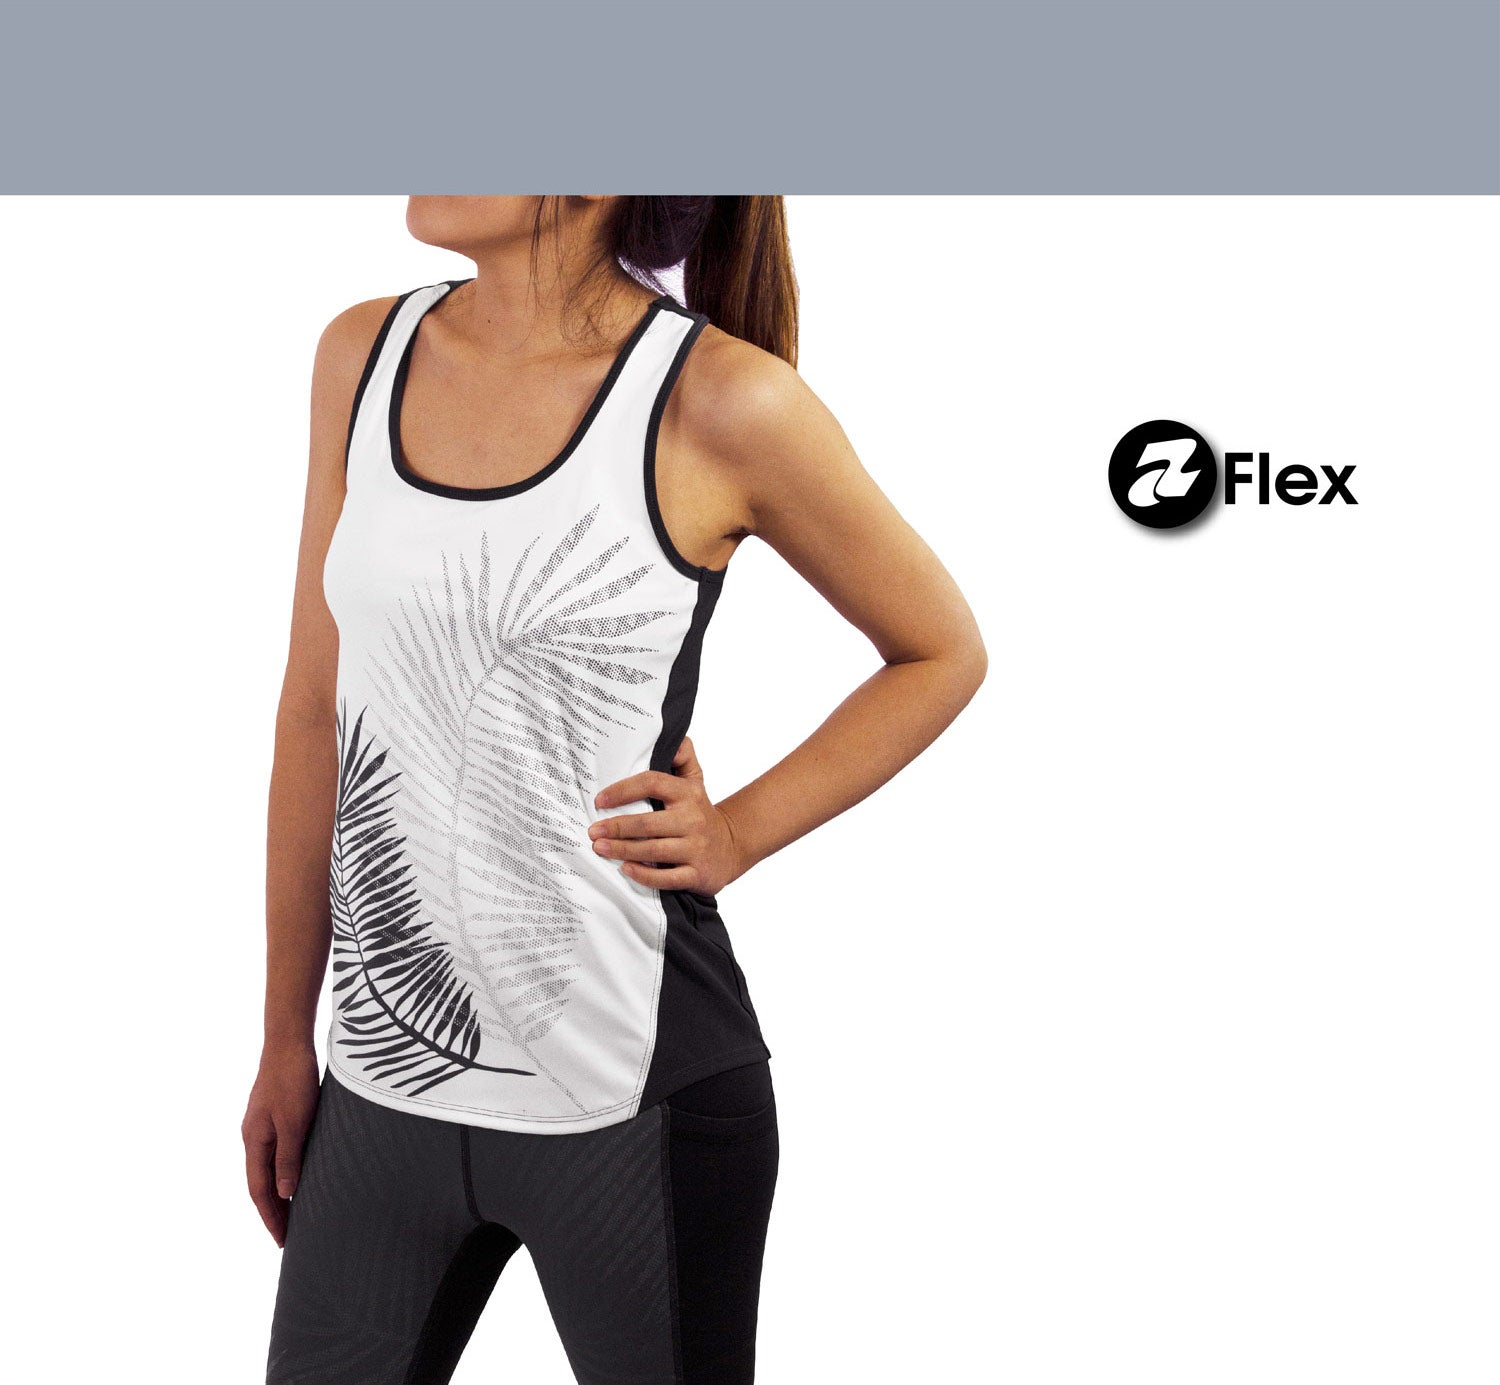 aflex made in usa athleisure wear for women